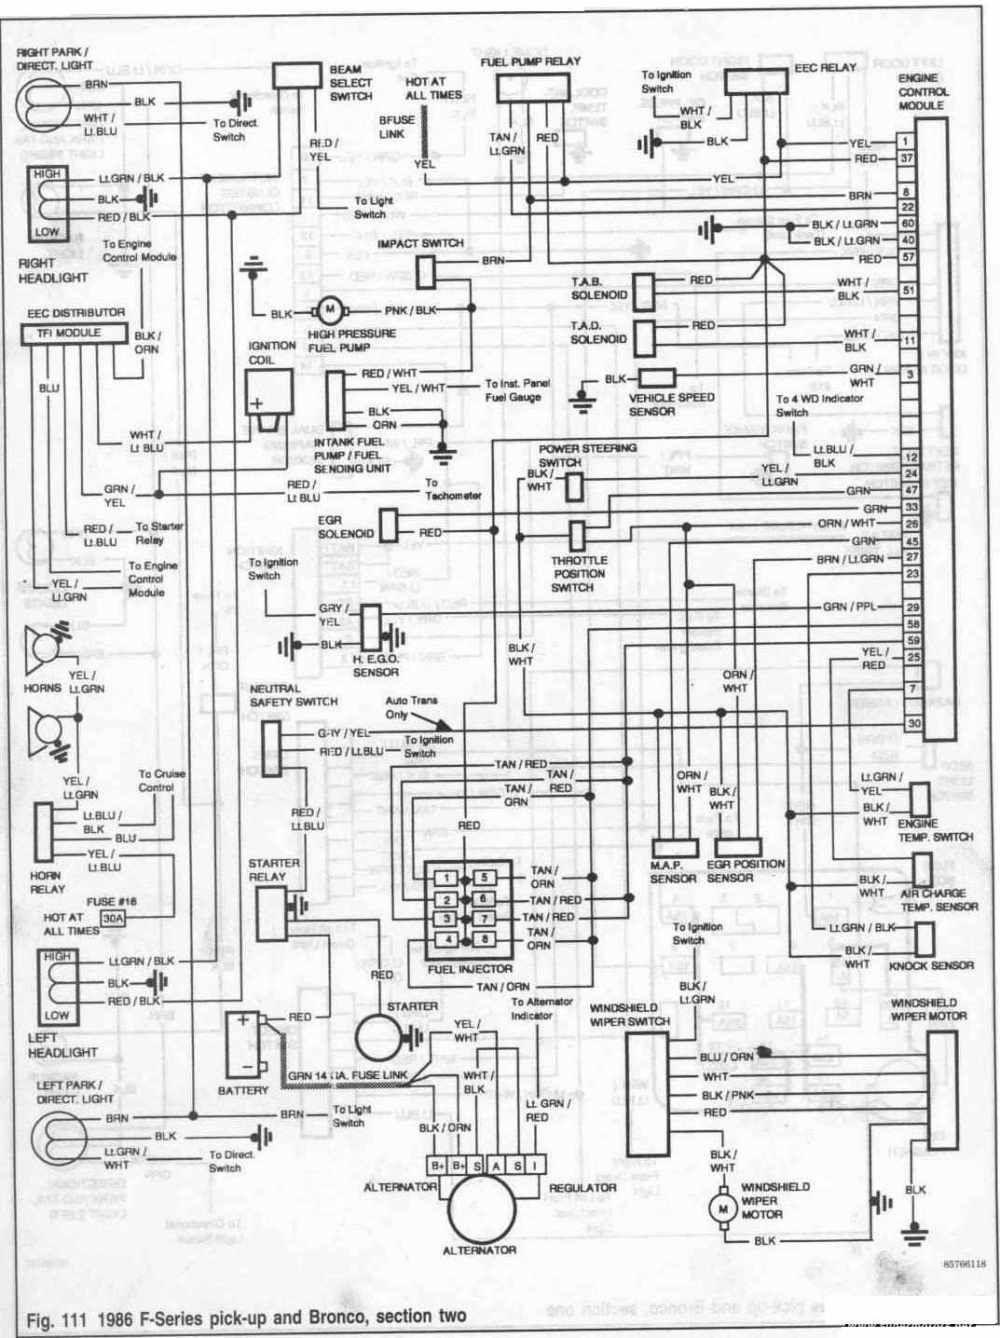 medium resolution of 1986 f350 wiring diagram schematic wiring diagrams 1995 ford f 150 fuel pump wiring diagram 1986 ford f150 fuel pump wiring diagram